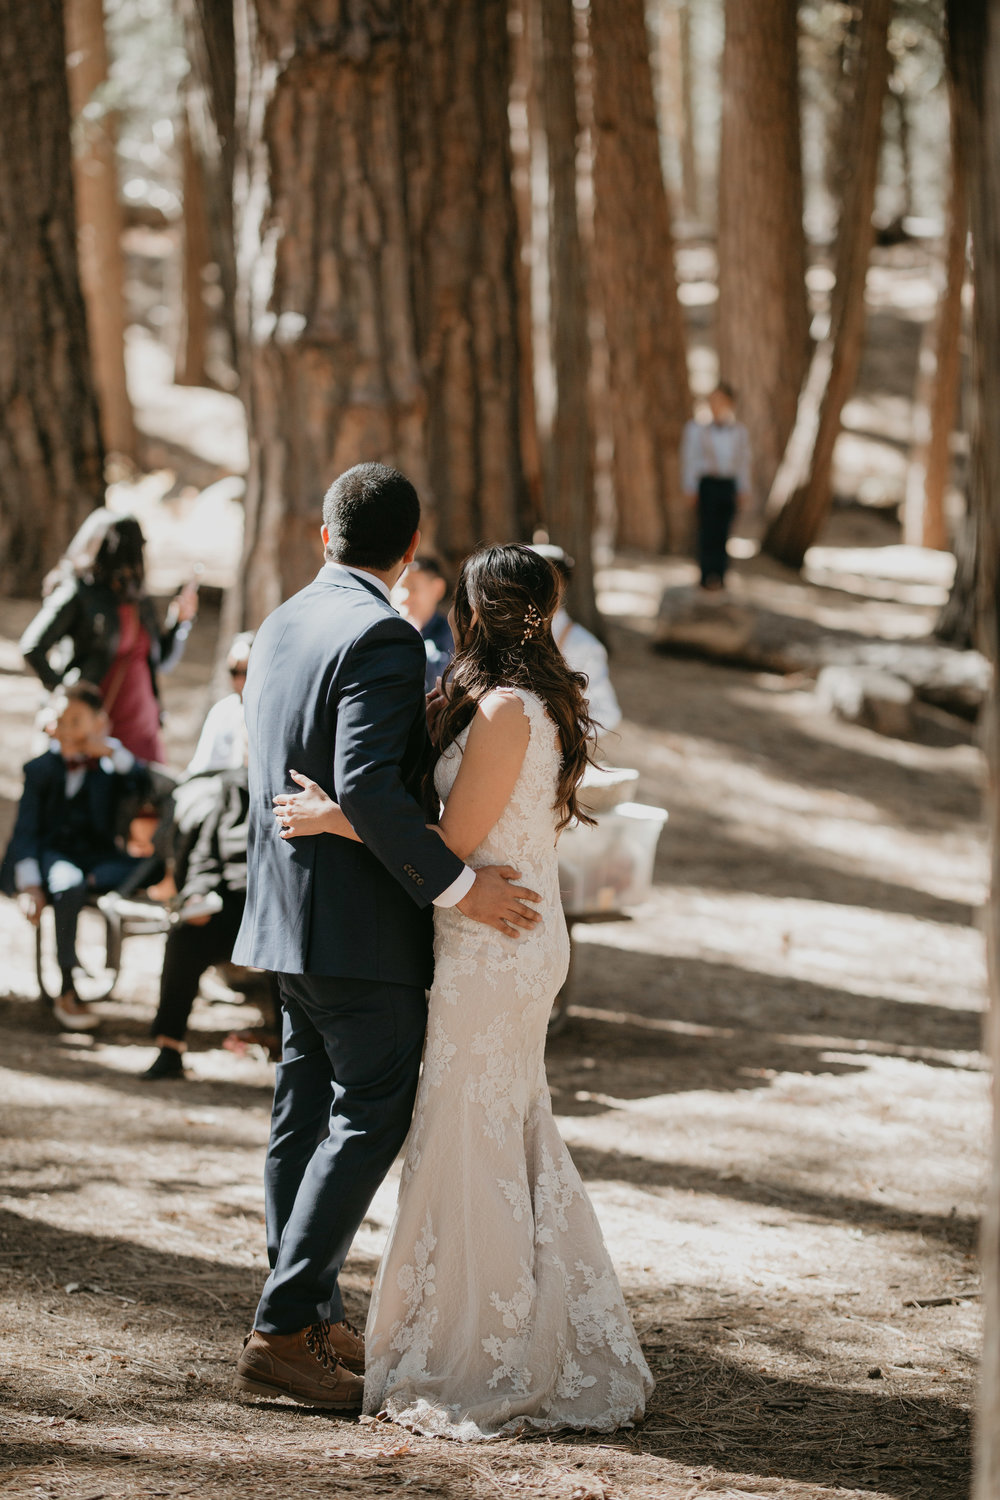 nicole-daacke-photography-intimate-elopement-wedding-yosemite-national-park-california-taft-point-sunset-photos-yosemite-valley-tunnel-view-first-look-sunrise-golden-granite-hiking-adventure-wedding-adventurous-elopement-photographer-79.jpg